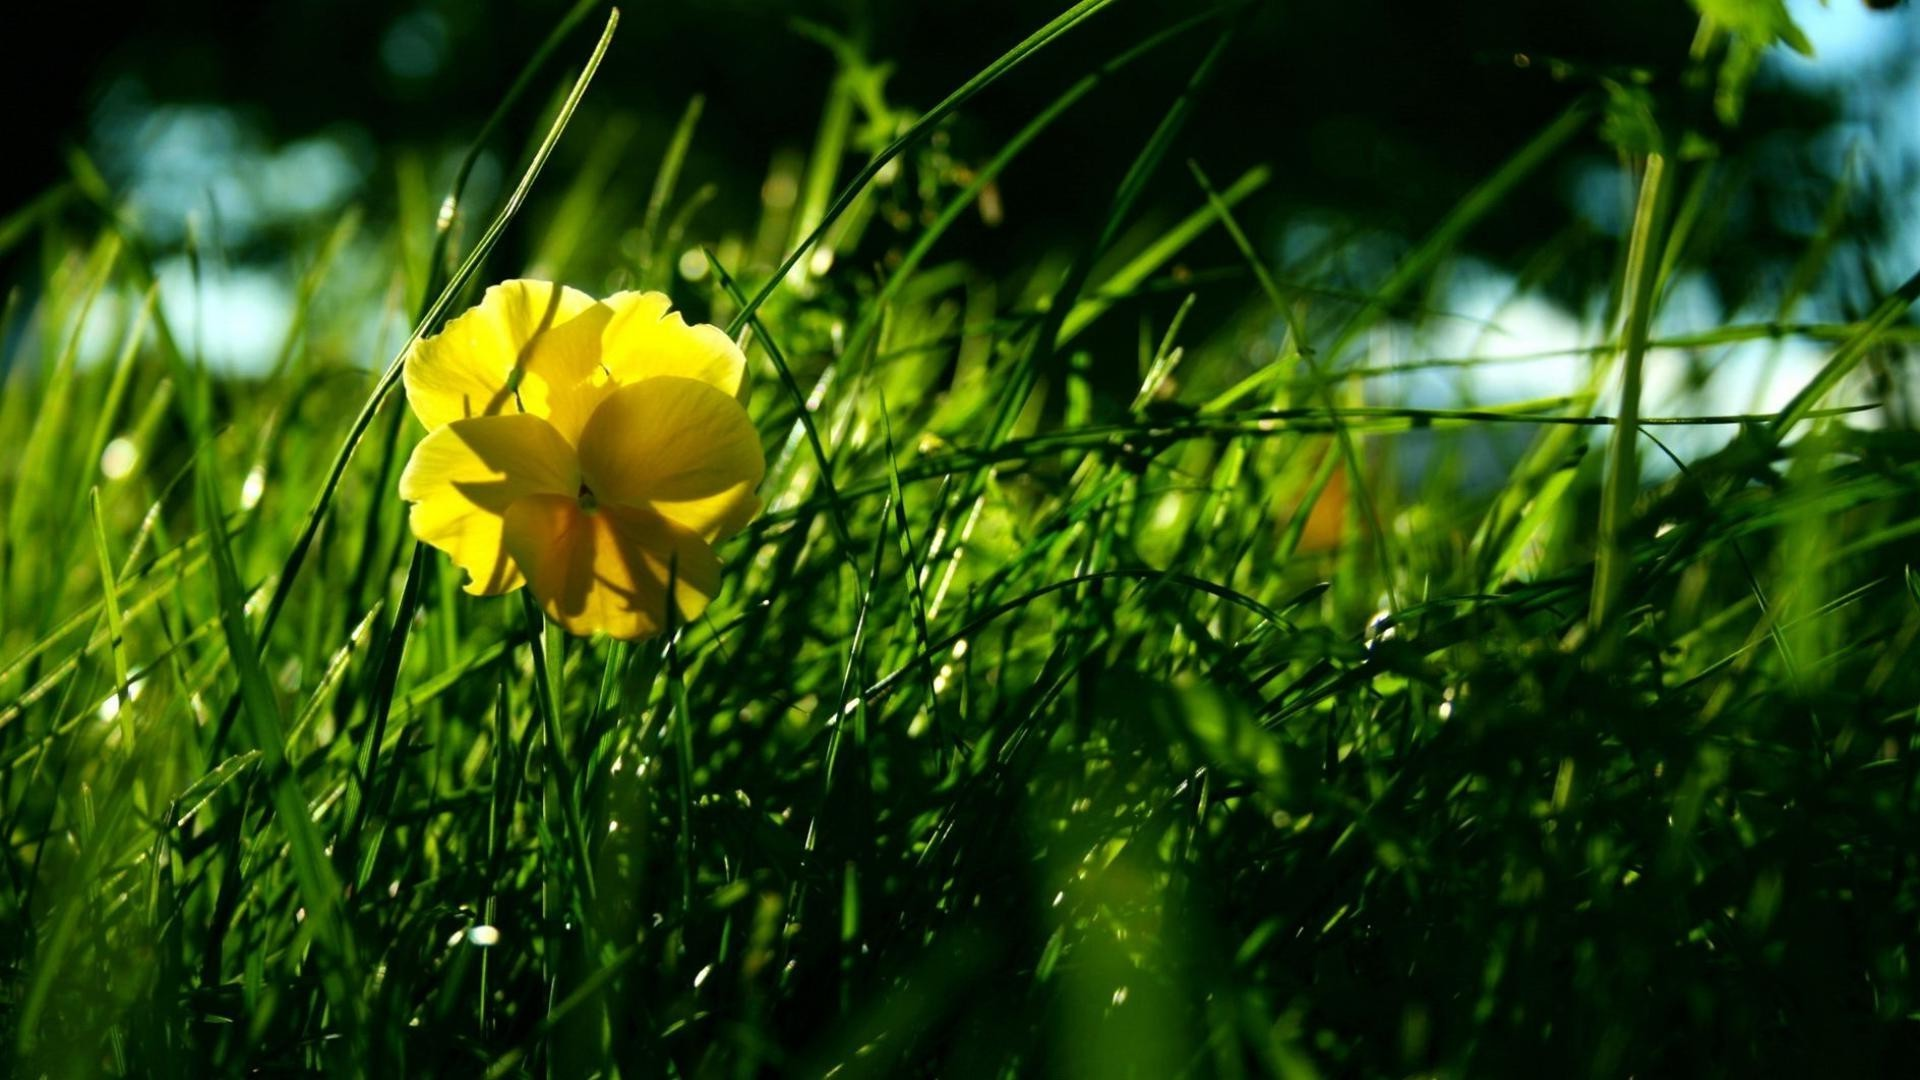 Yellow Flower In The Grass Android Wallpapers For Free